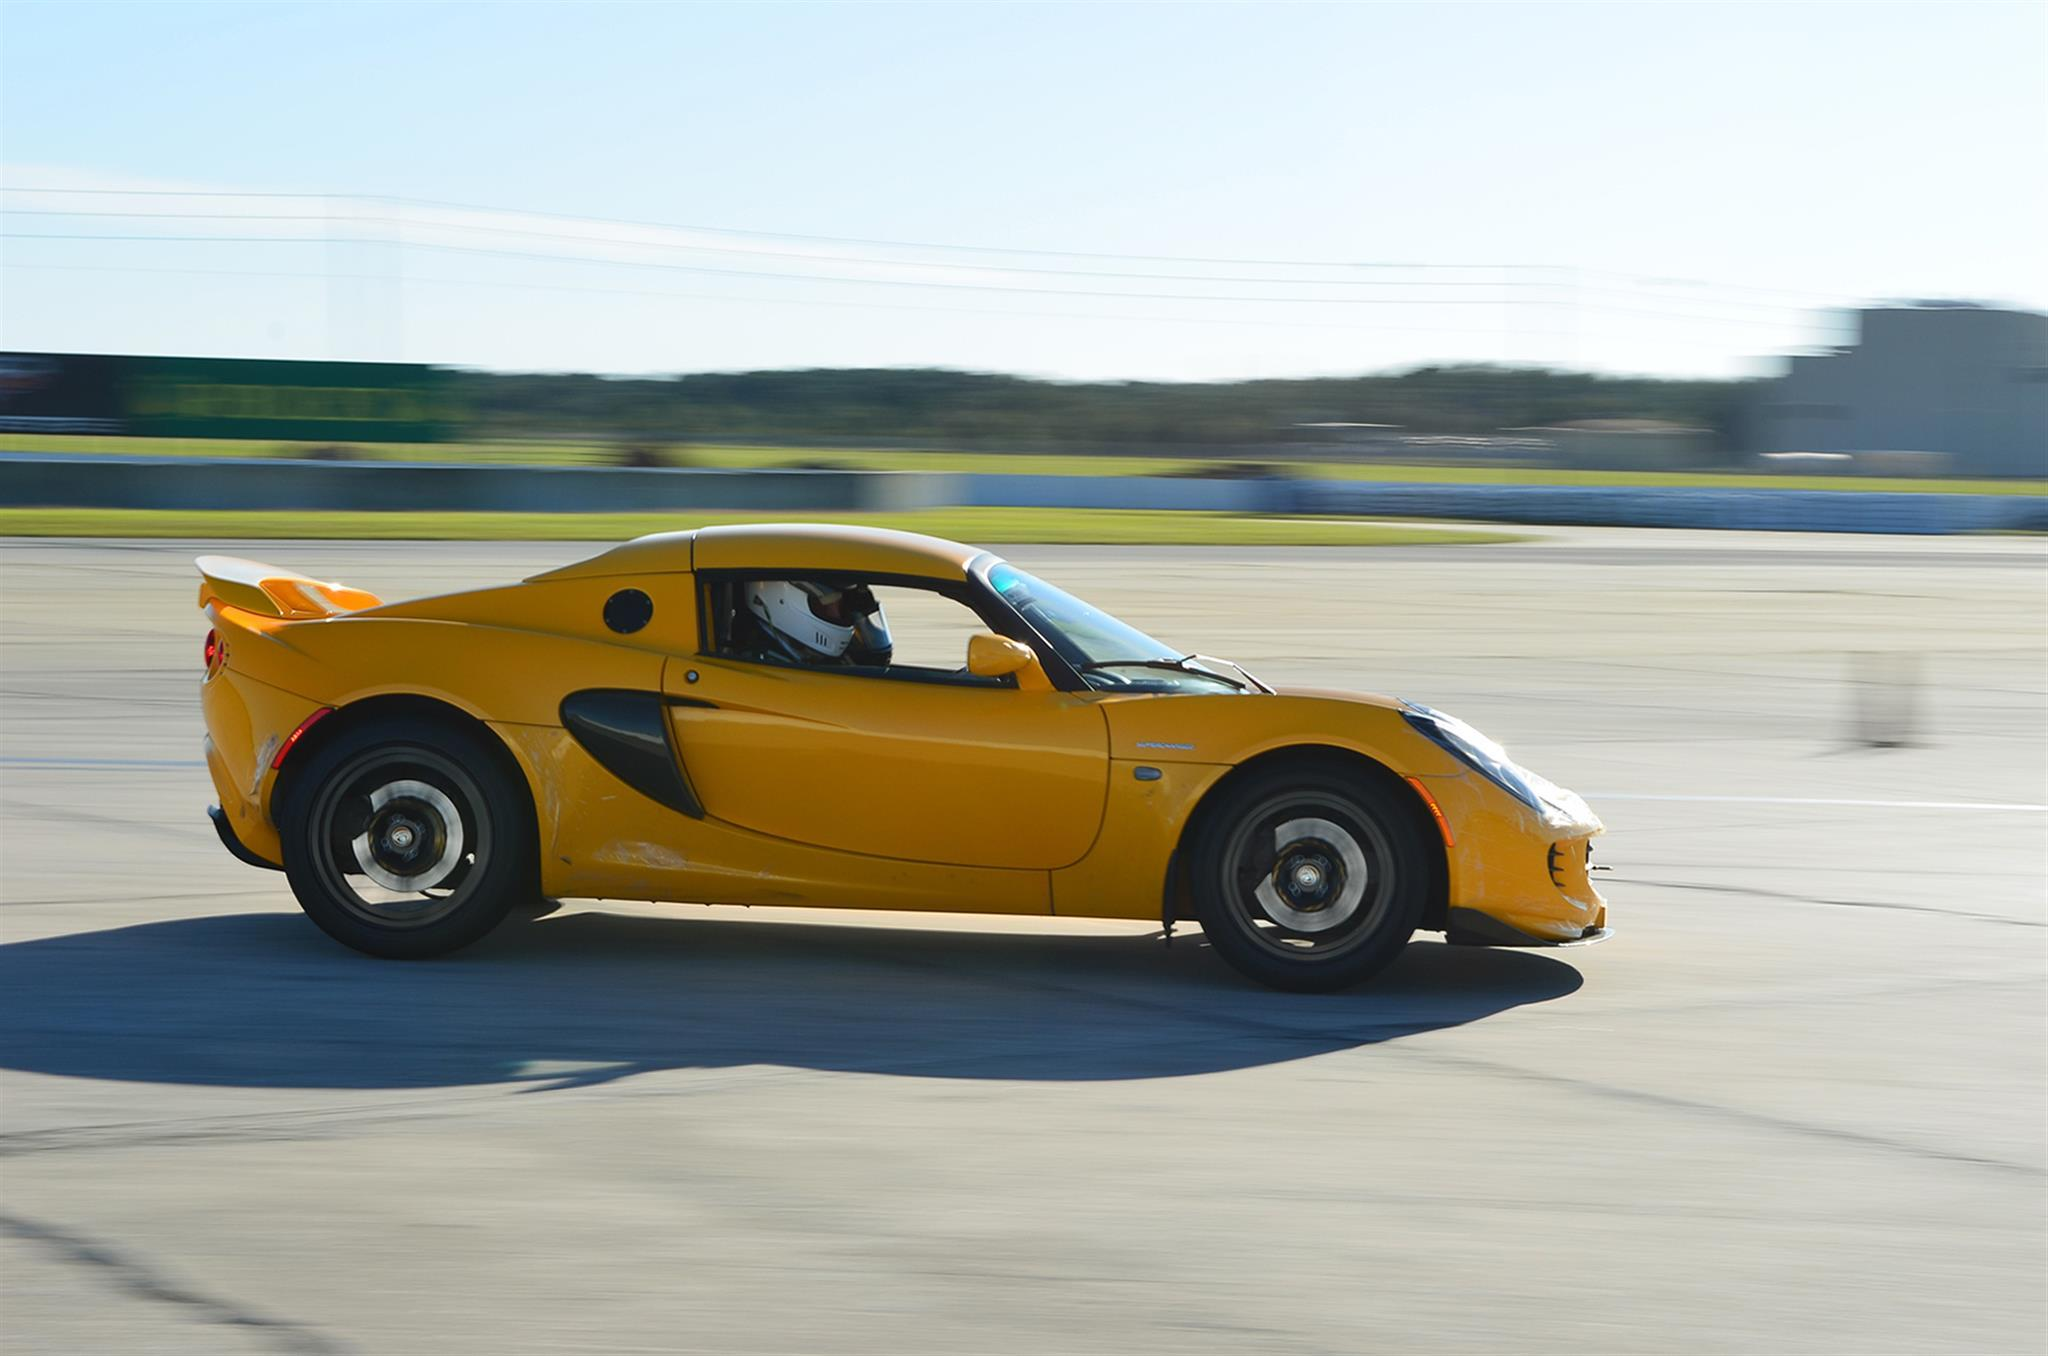 2006 Supercharged Lotus Elise -  Early stage of project, Sector 111 Gutsport Wing: